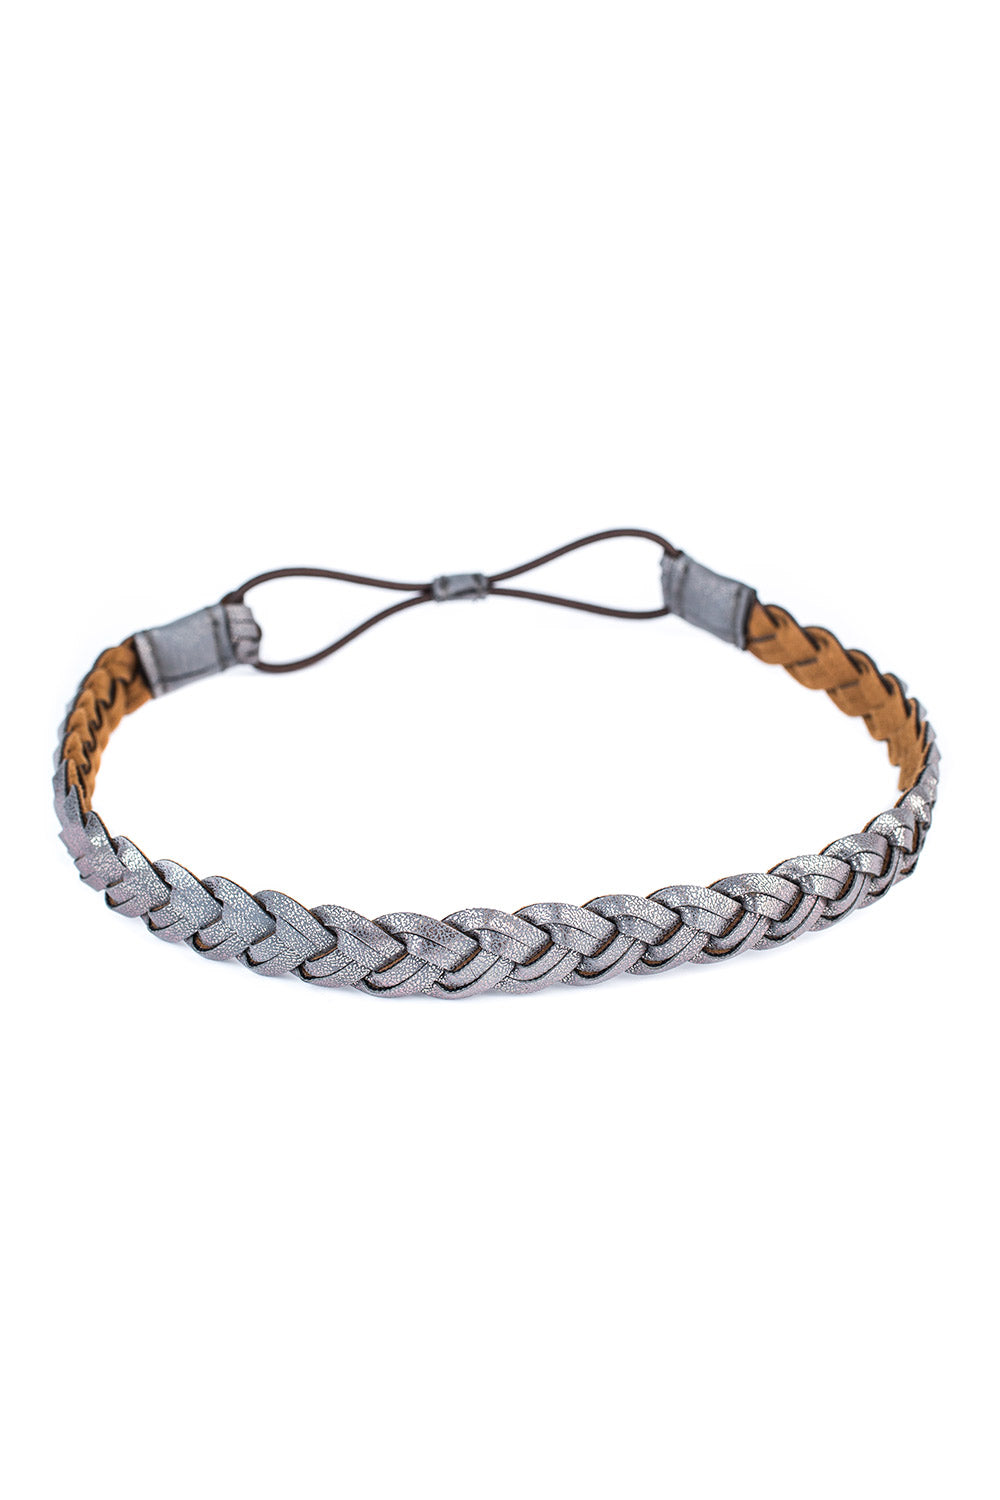 Type 2 Braided Marble Headband